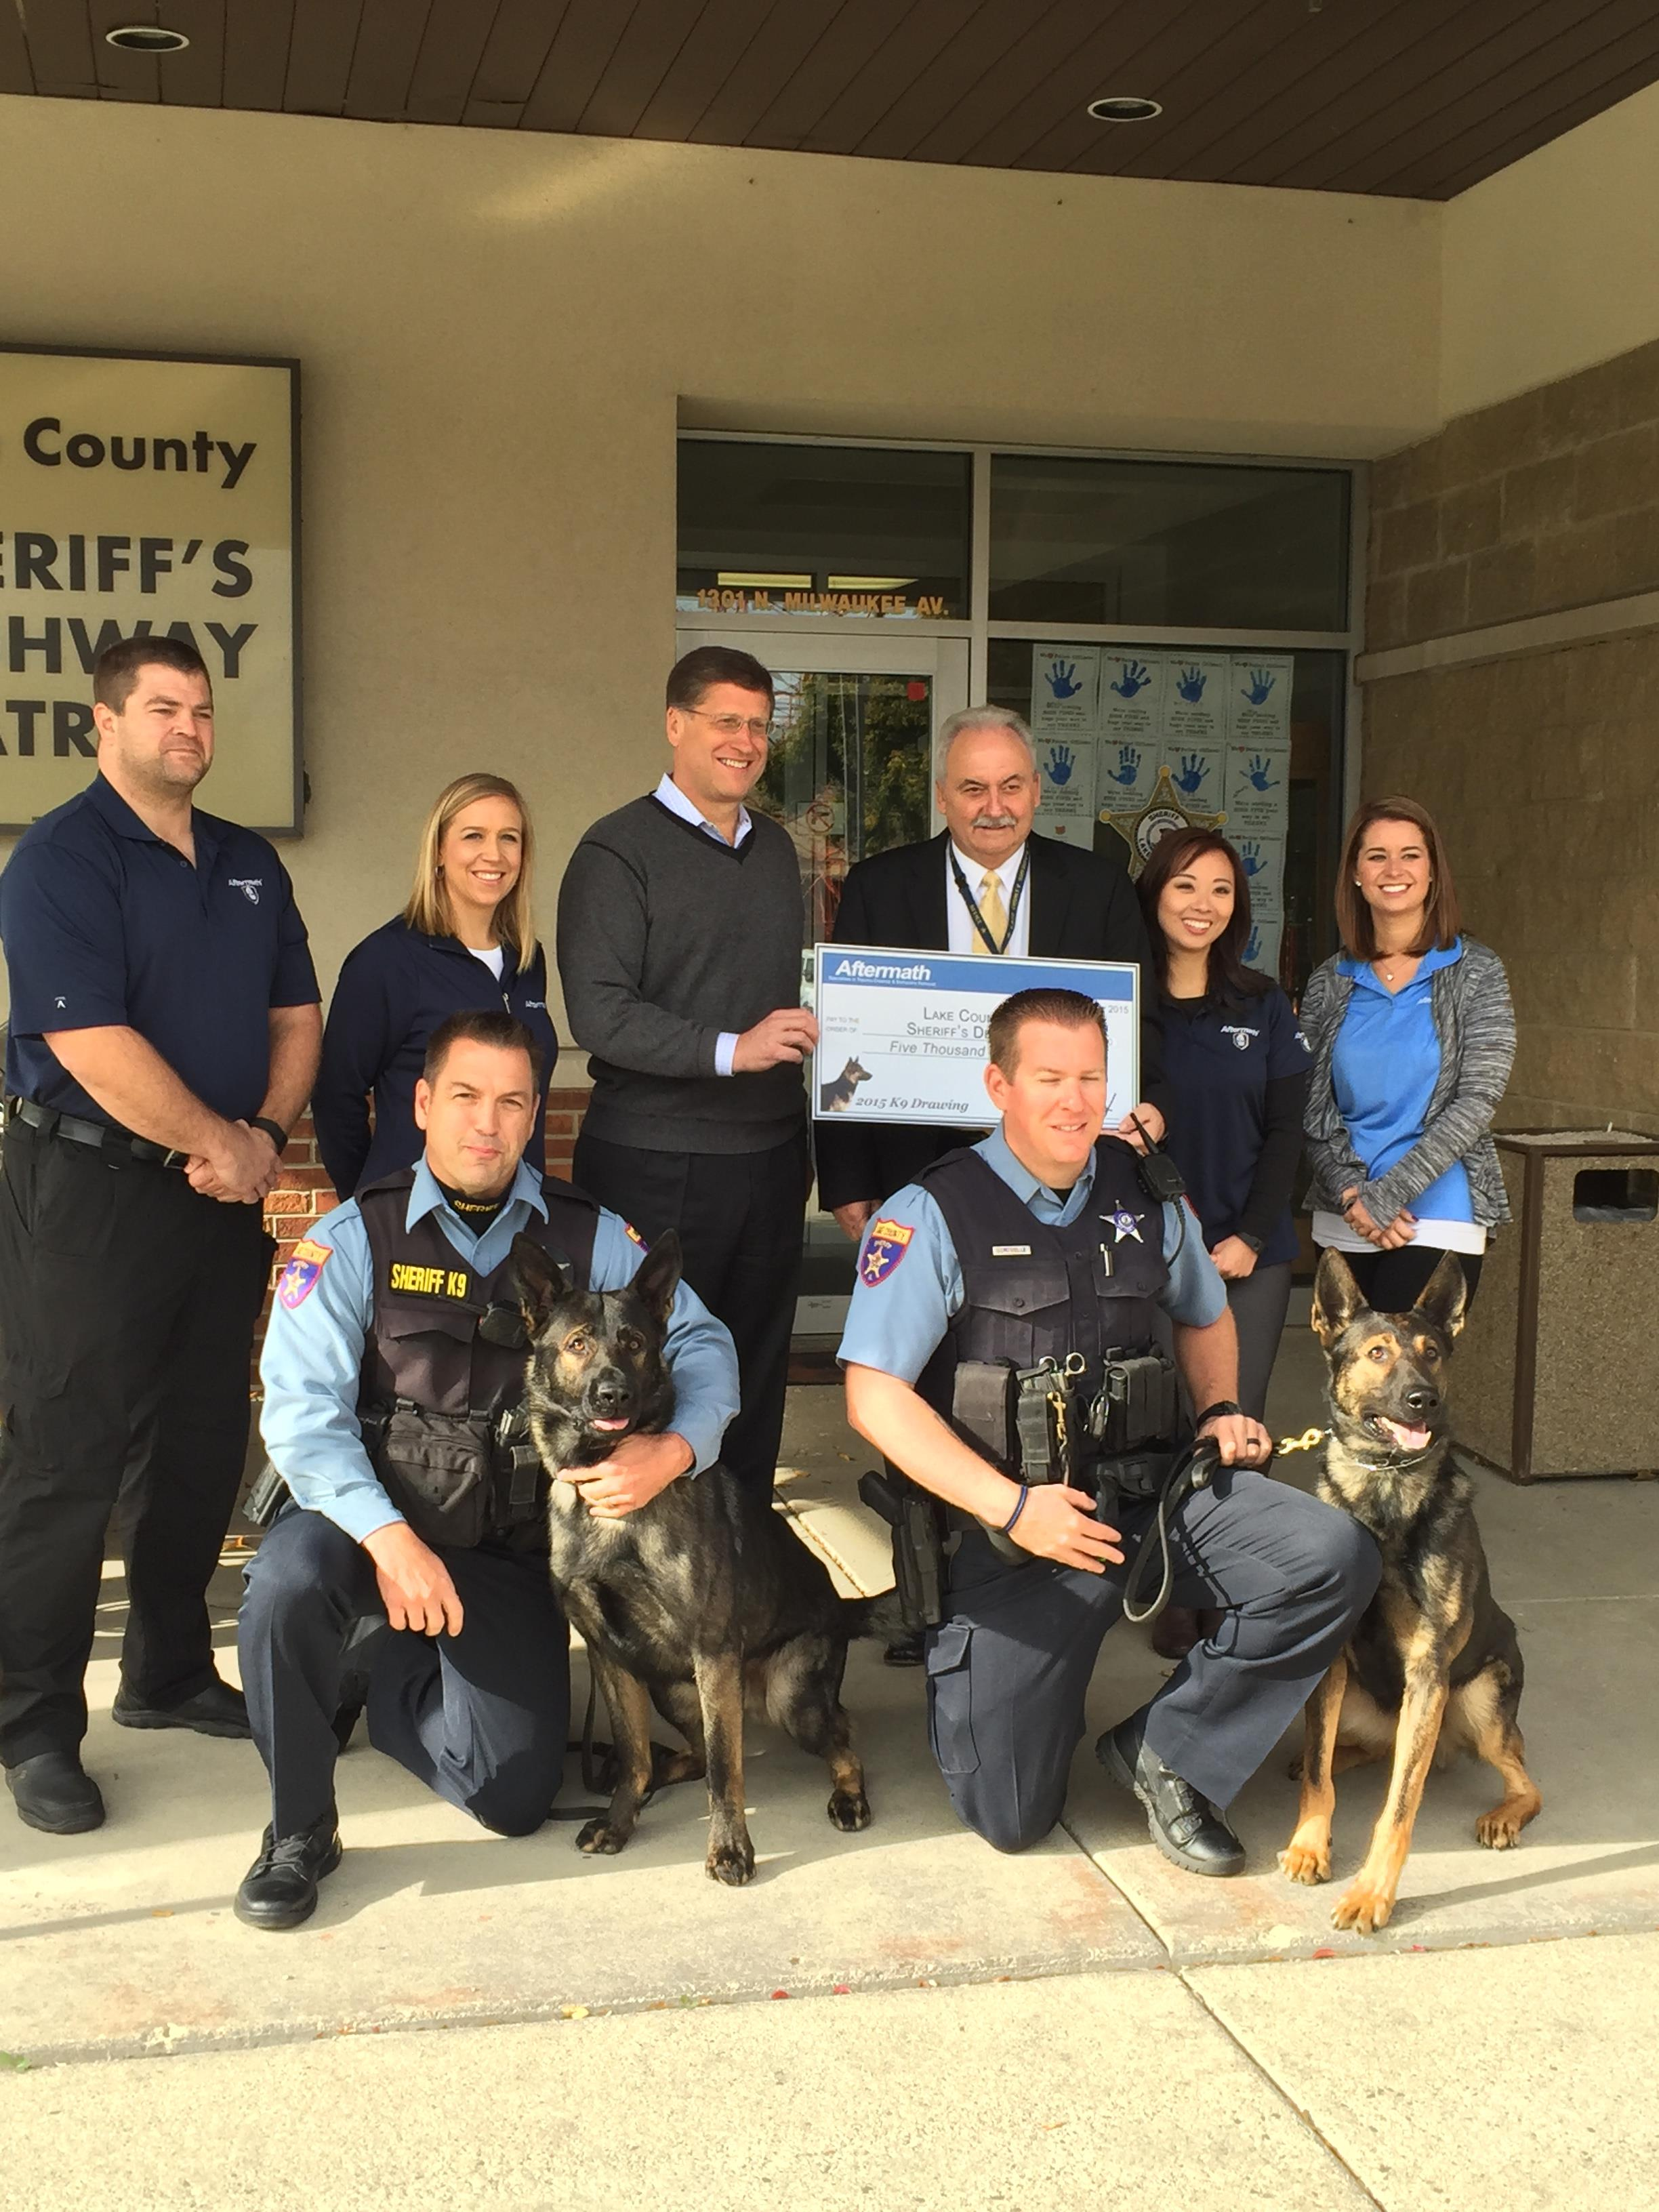 Aftermath Awards K9 Grant to Lake County Sheriff's Office - Aftermath